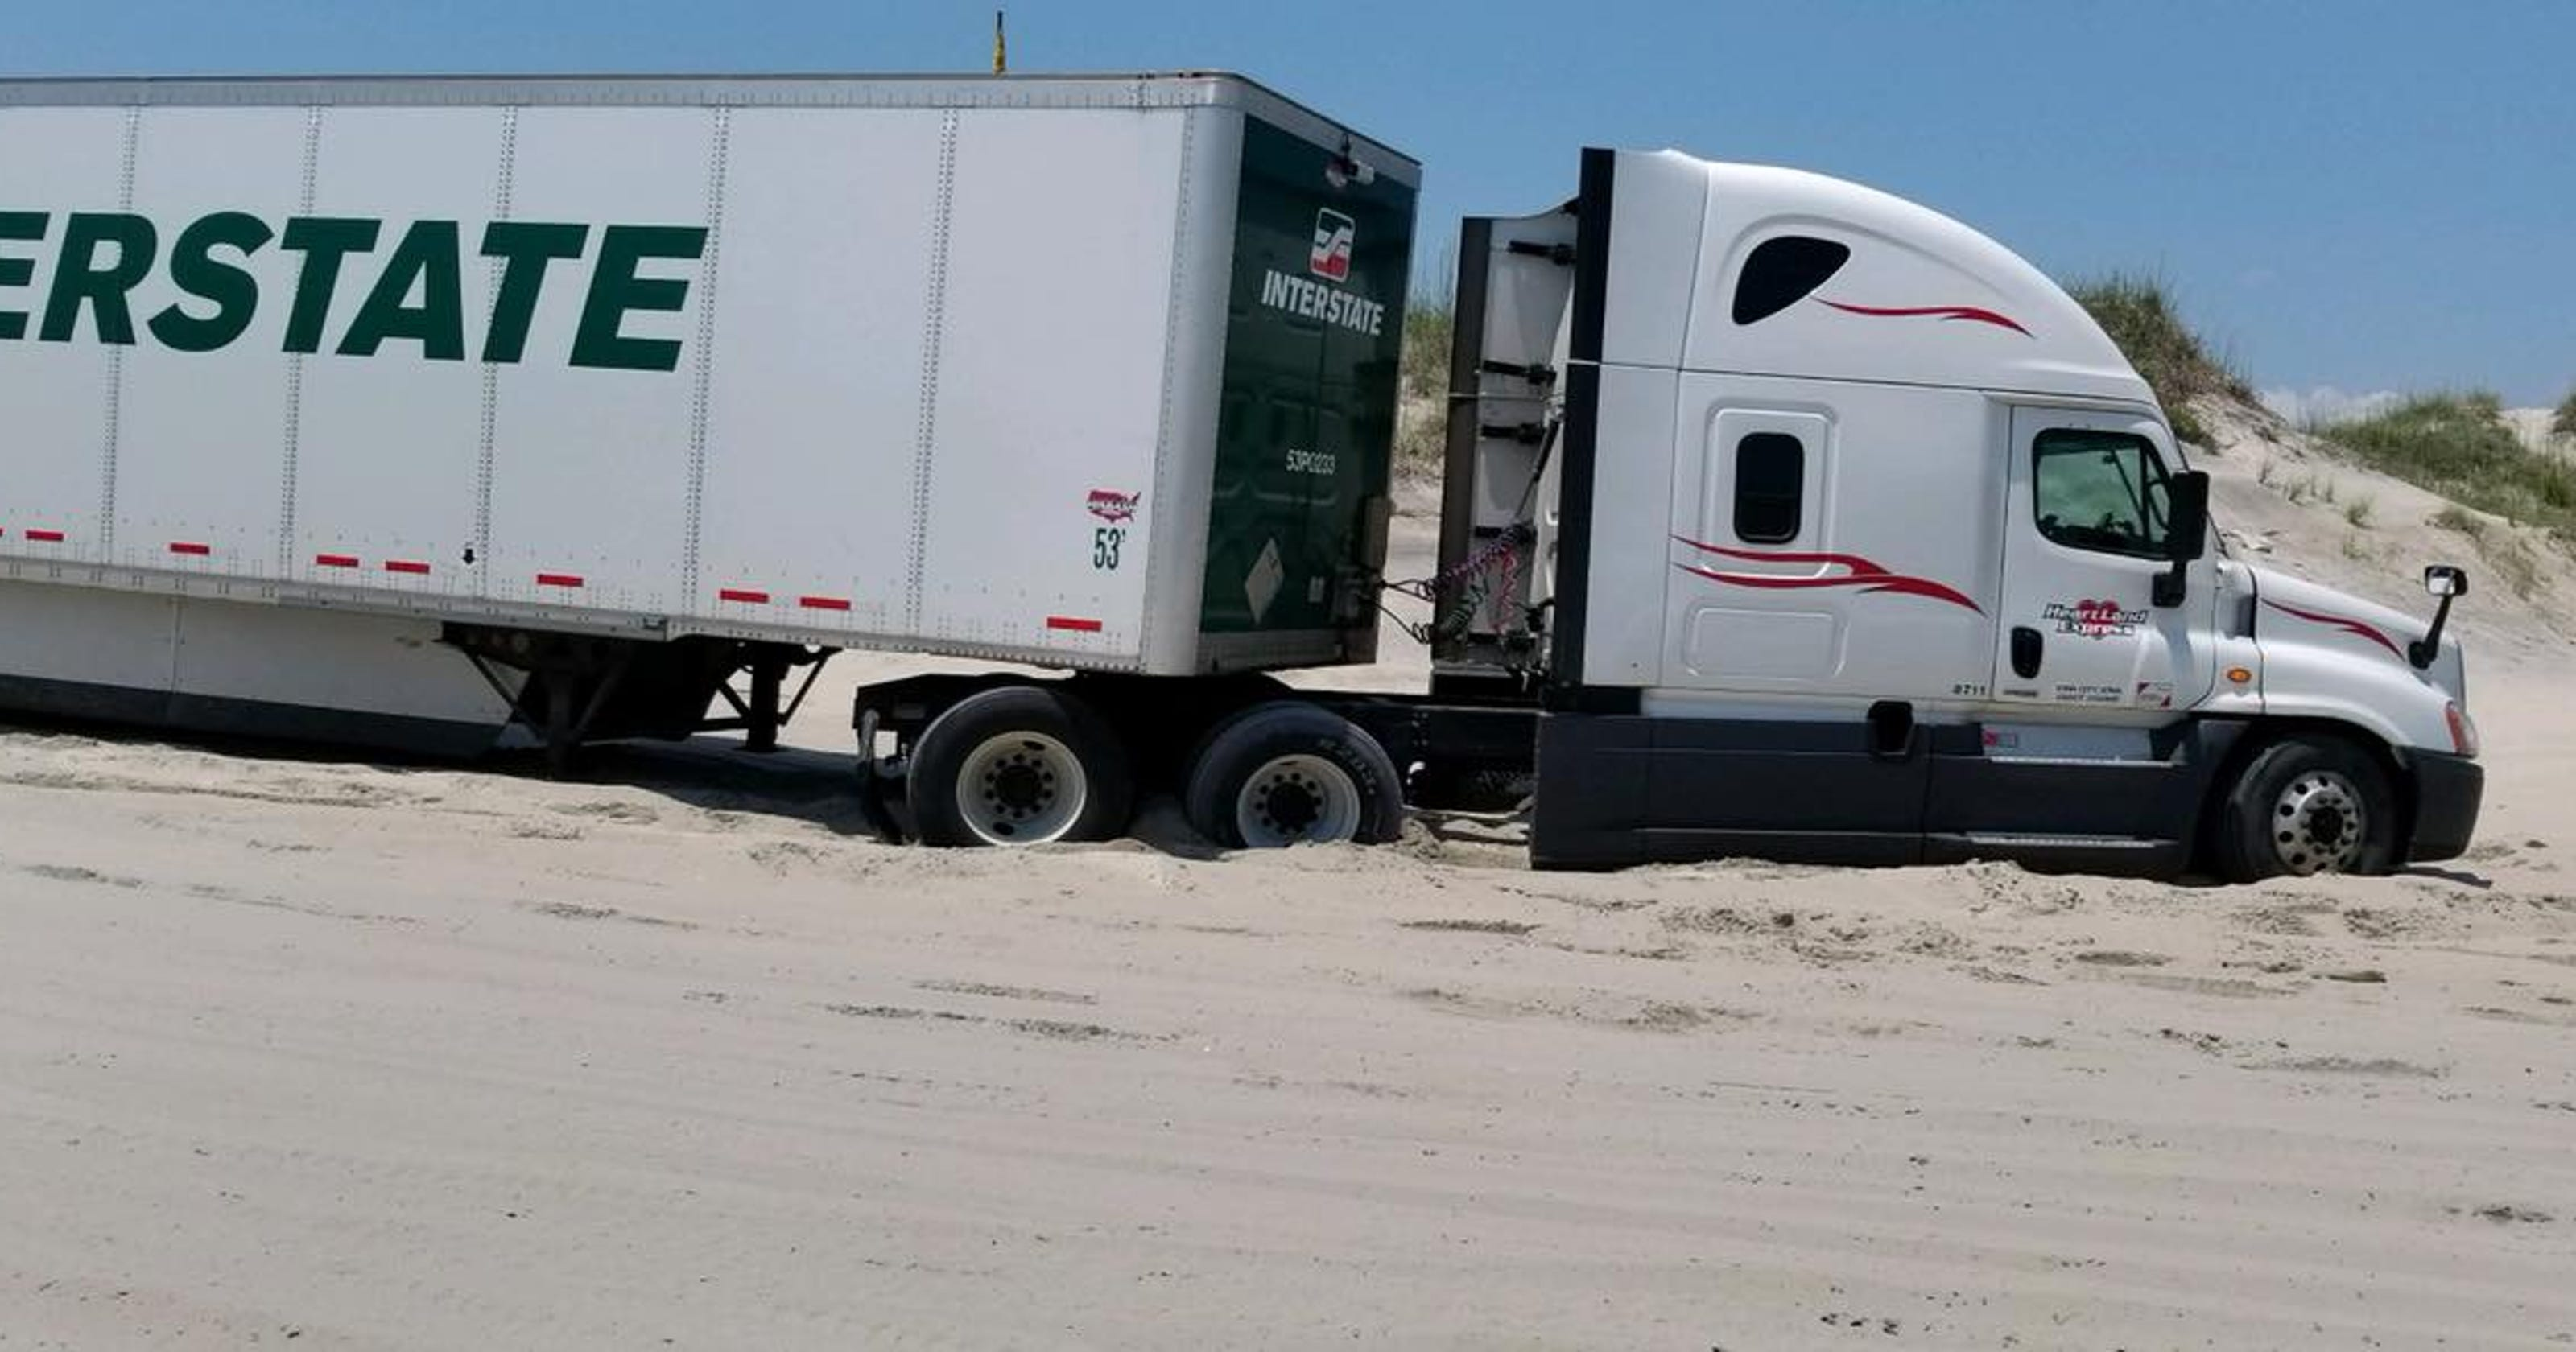 Tractor-trailer gets stuck in Outer Banks trying to drive on beach